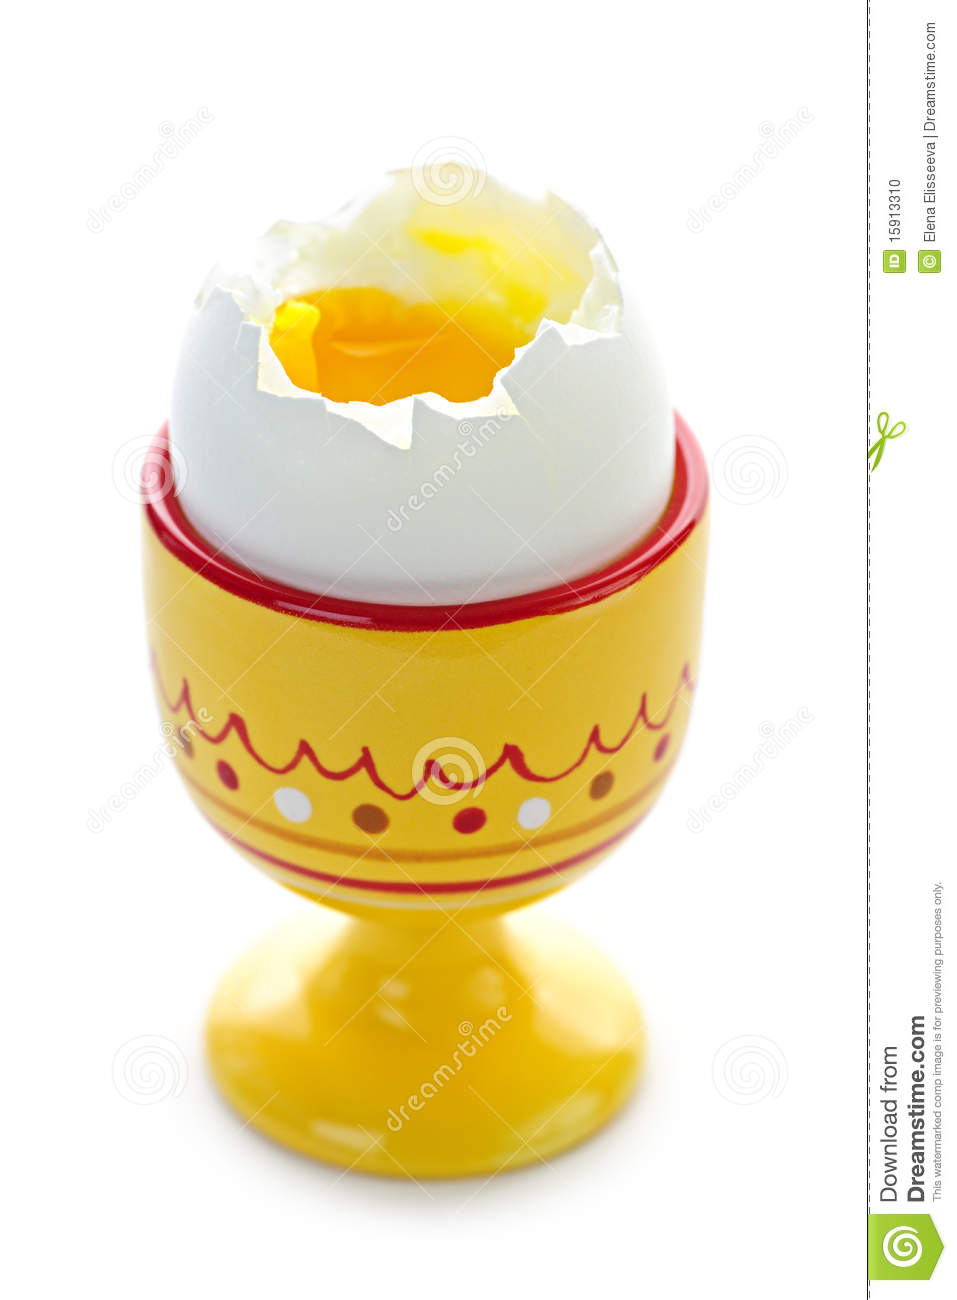 Soft Boiled Egg In Cup Stock Photo - Image: 15913310